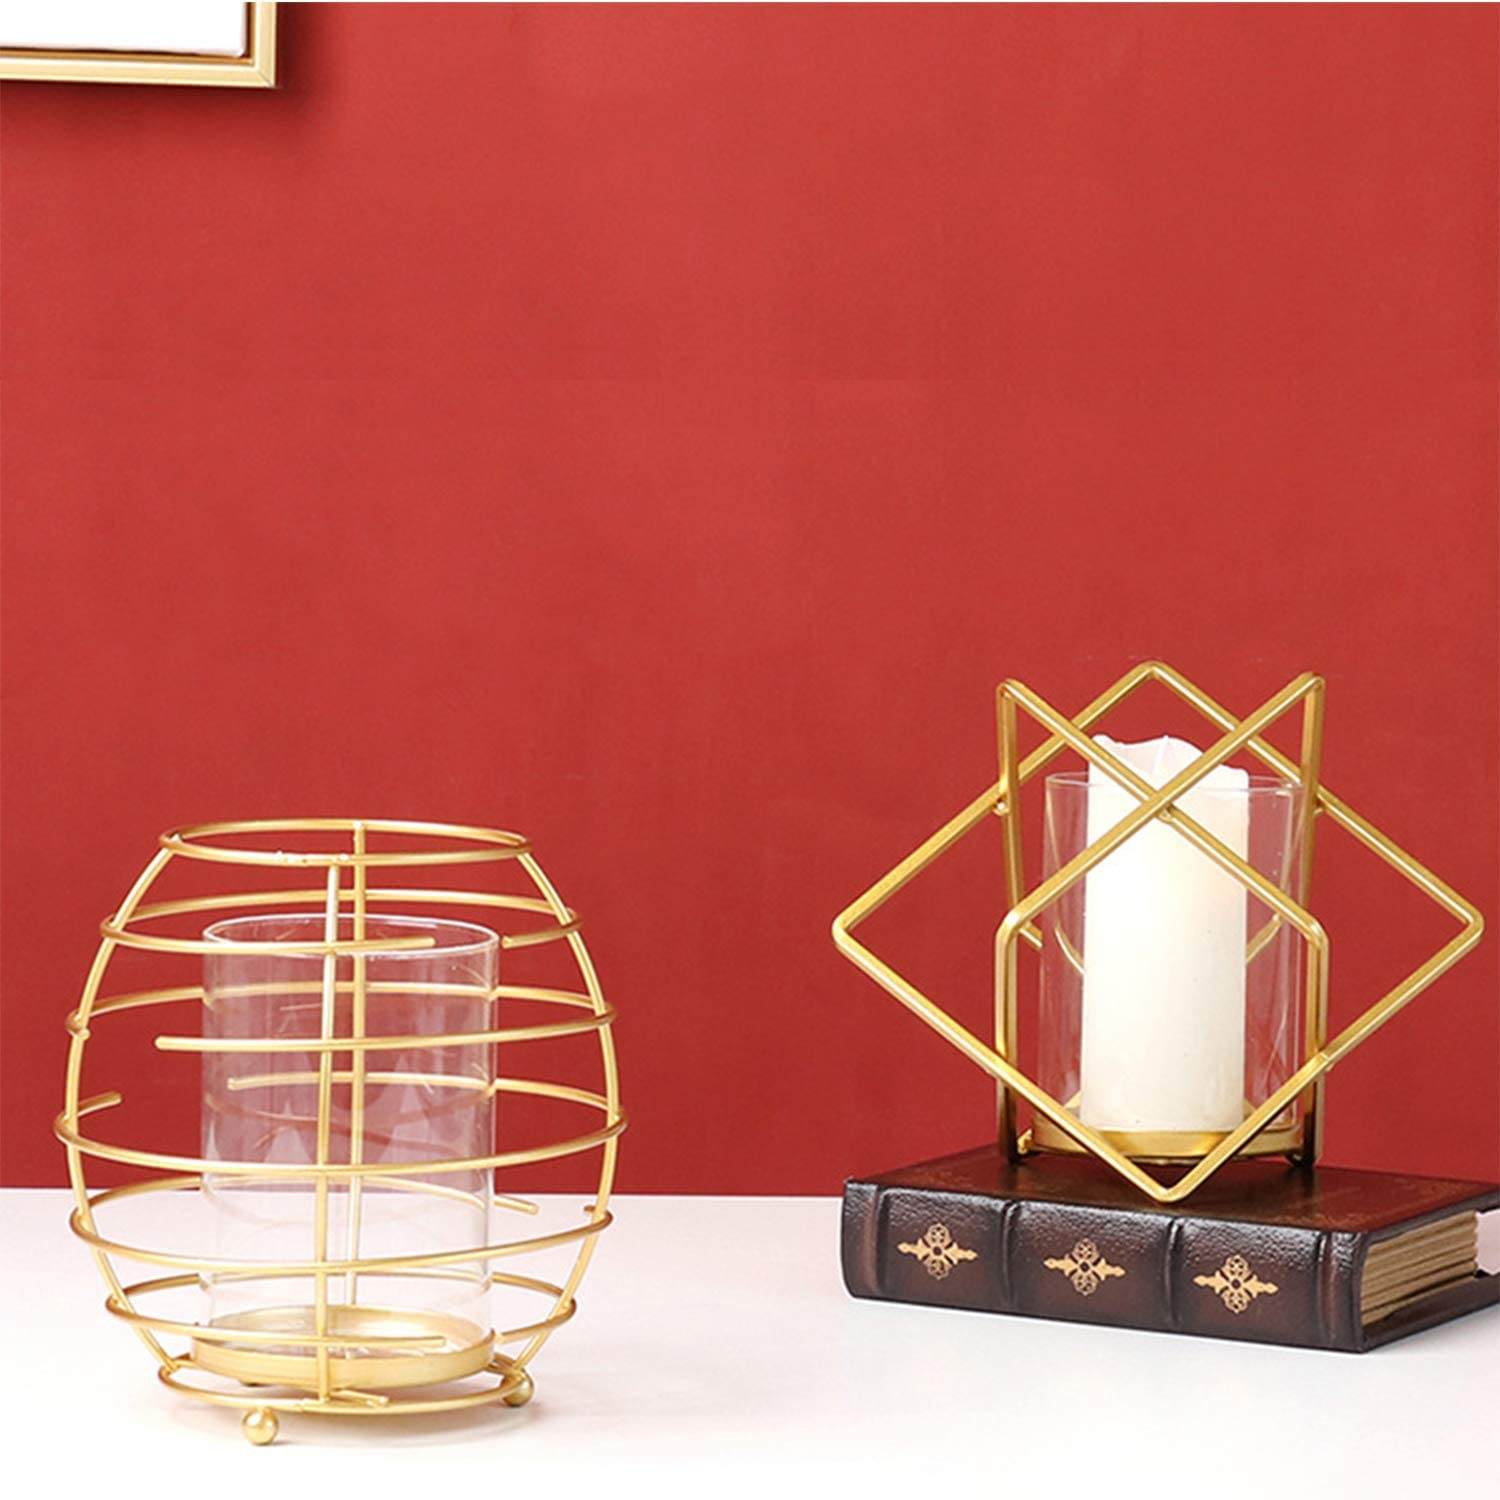 Gold Topotdor Geometric Candlestick Holders Set of 2,Gold Metal Creative Candle Holders for Romantic Wedding,Table Decor,Parties and Gifts